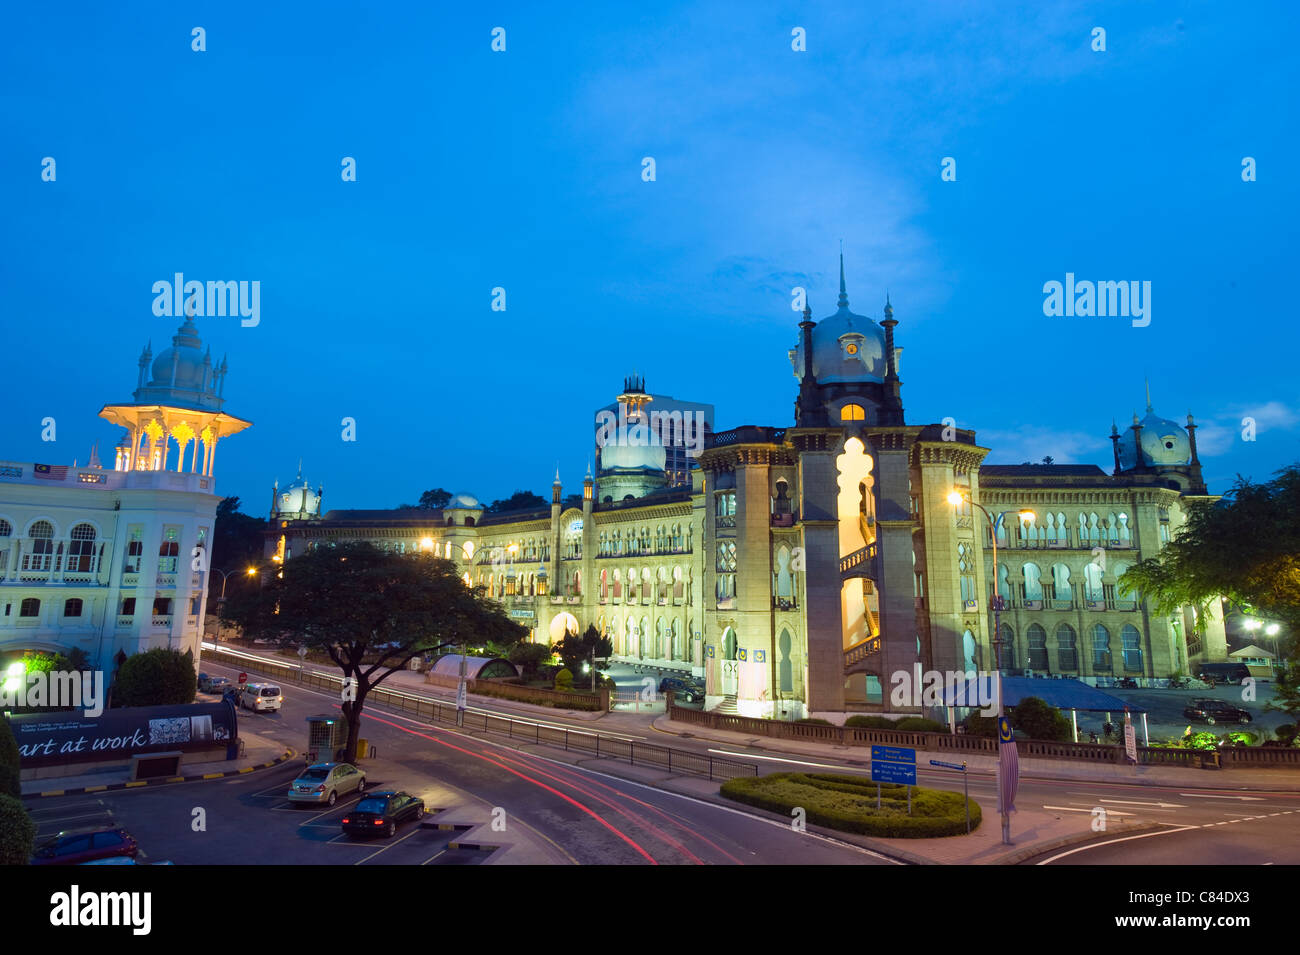 Old KL Railway Station, Kuala Lumpur, Malaysia, South East Asia - Stock Image